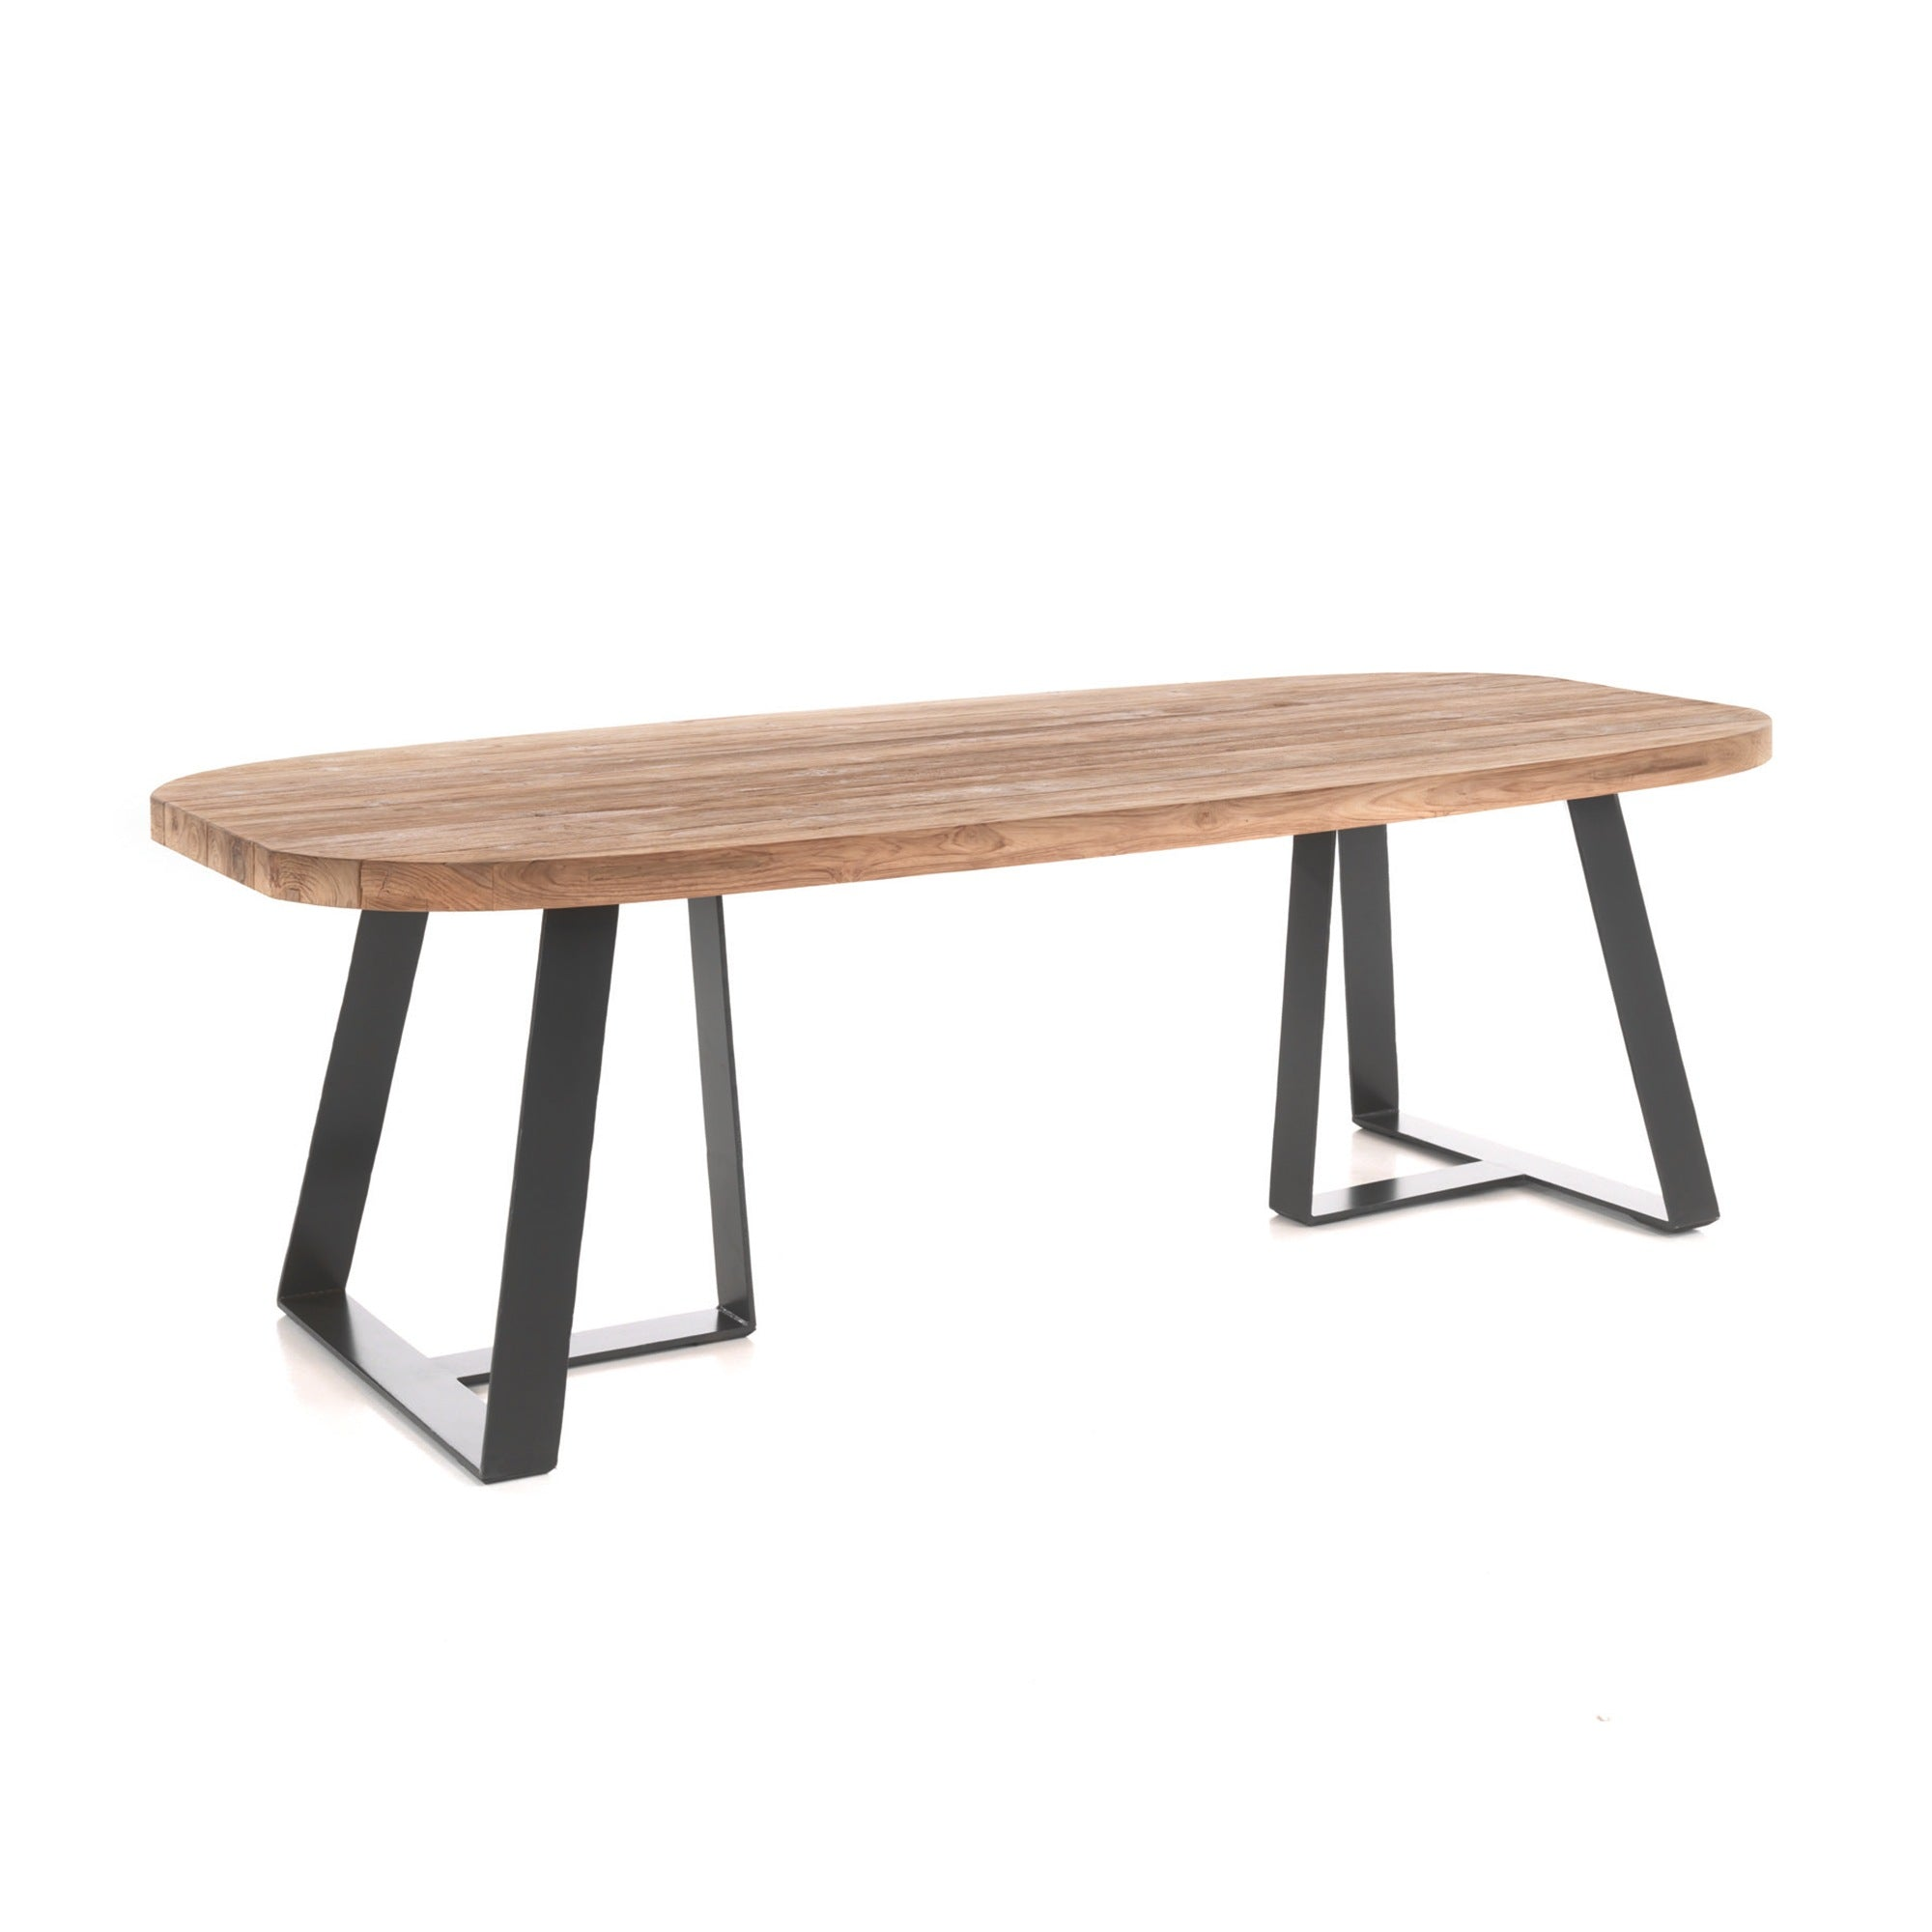 Santorini Outdoor 2 varianten Ellips Table - Inspiroo powered by IMwillems